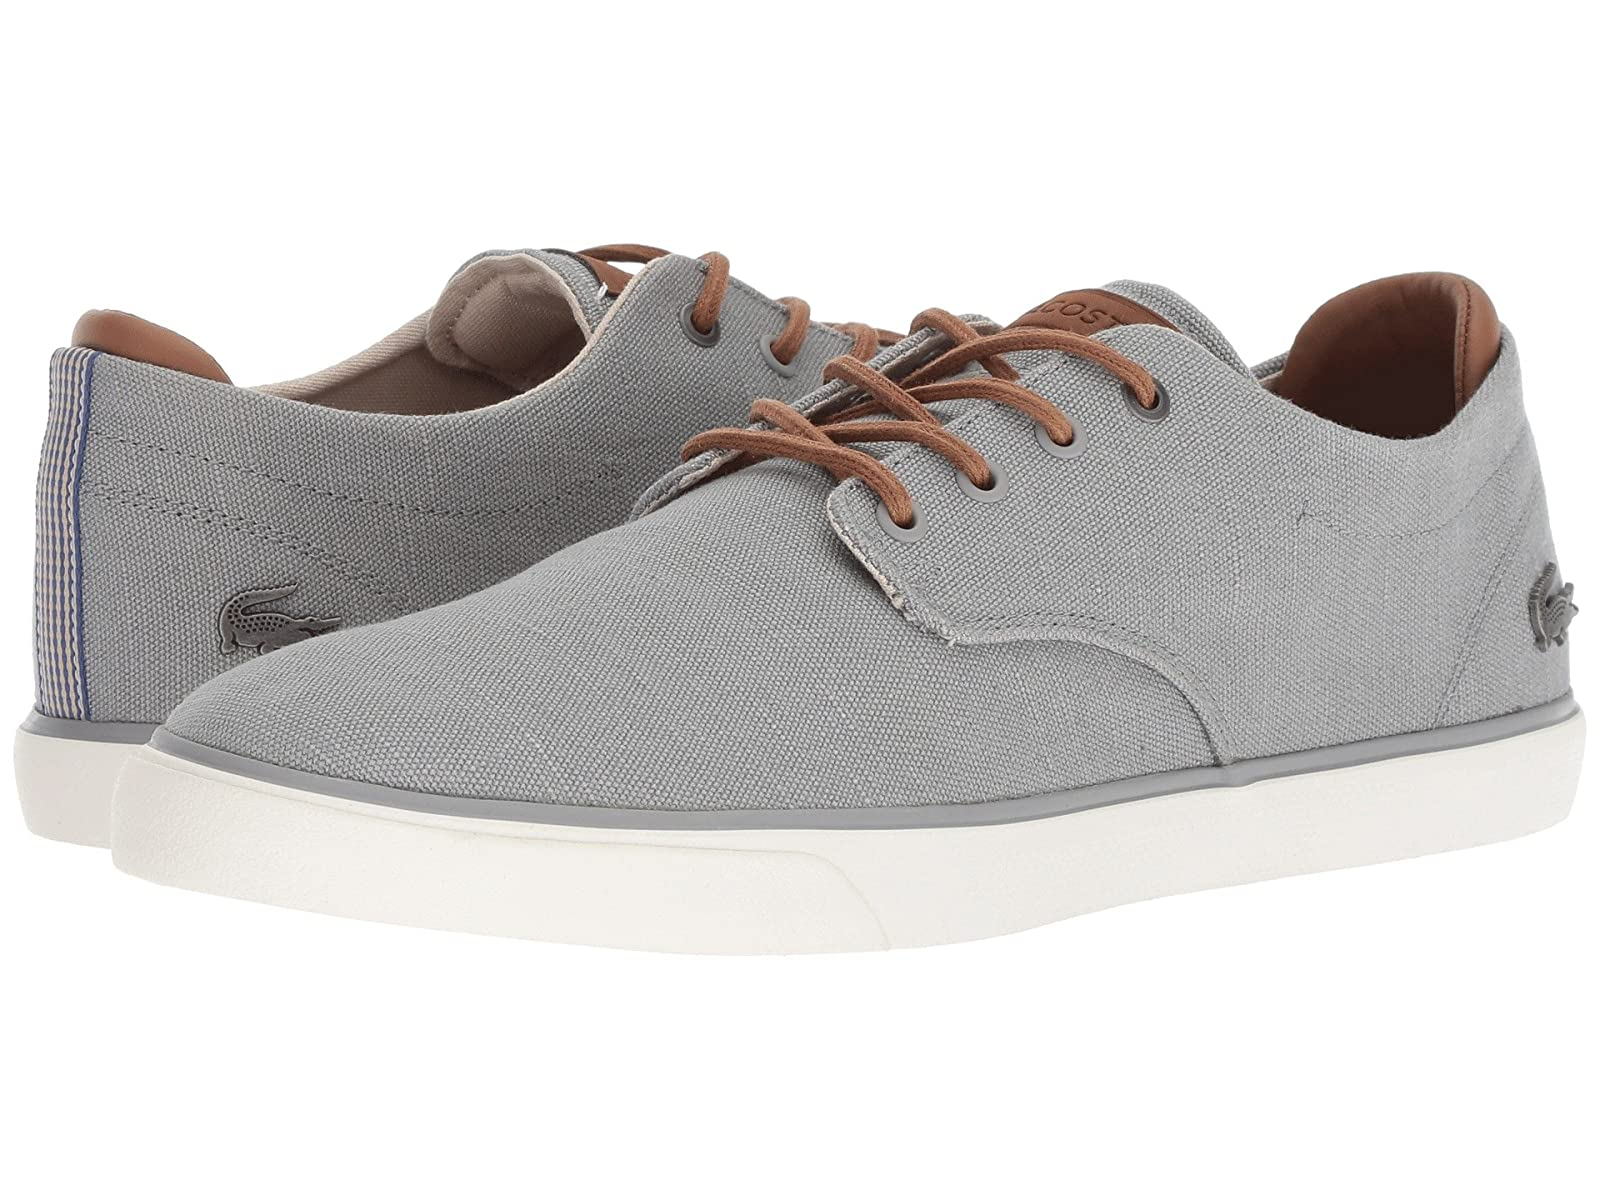 Lacoste Esparre 318 3Atmospheric grades have affordable shoes